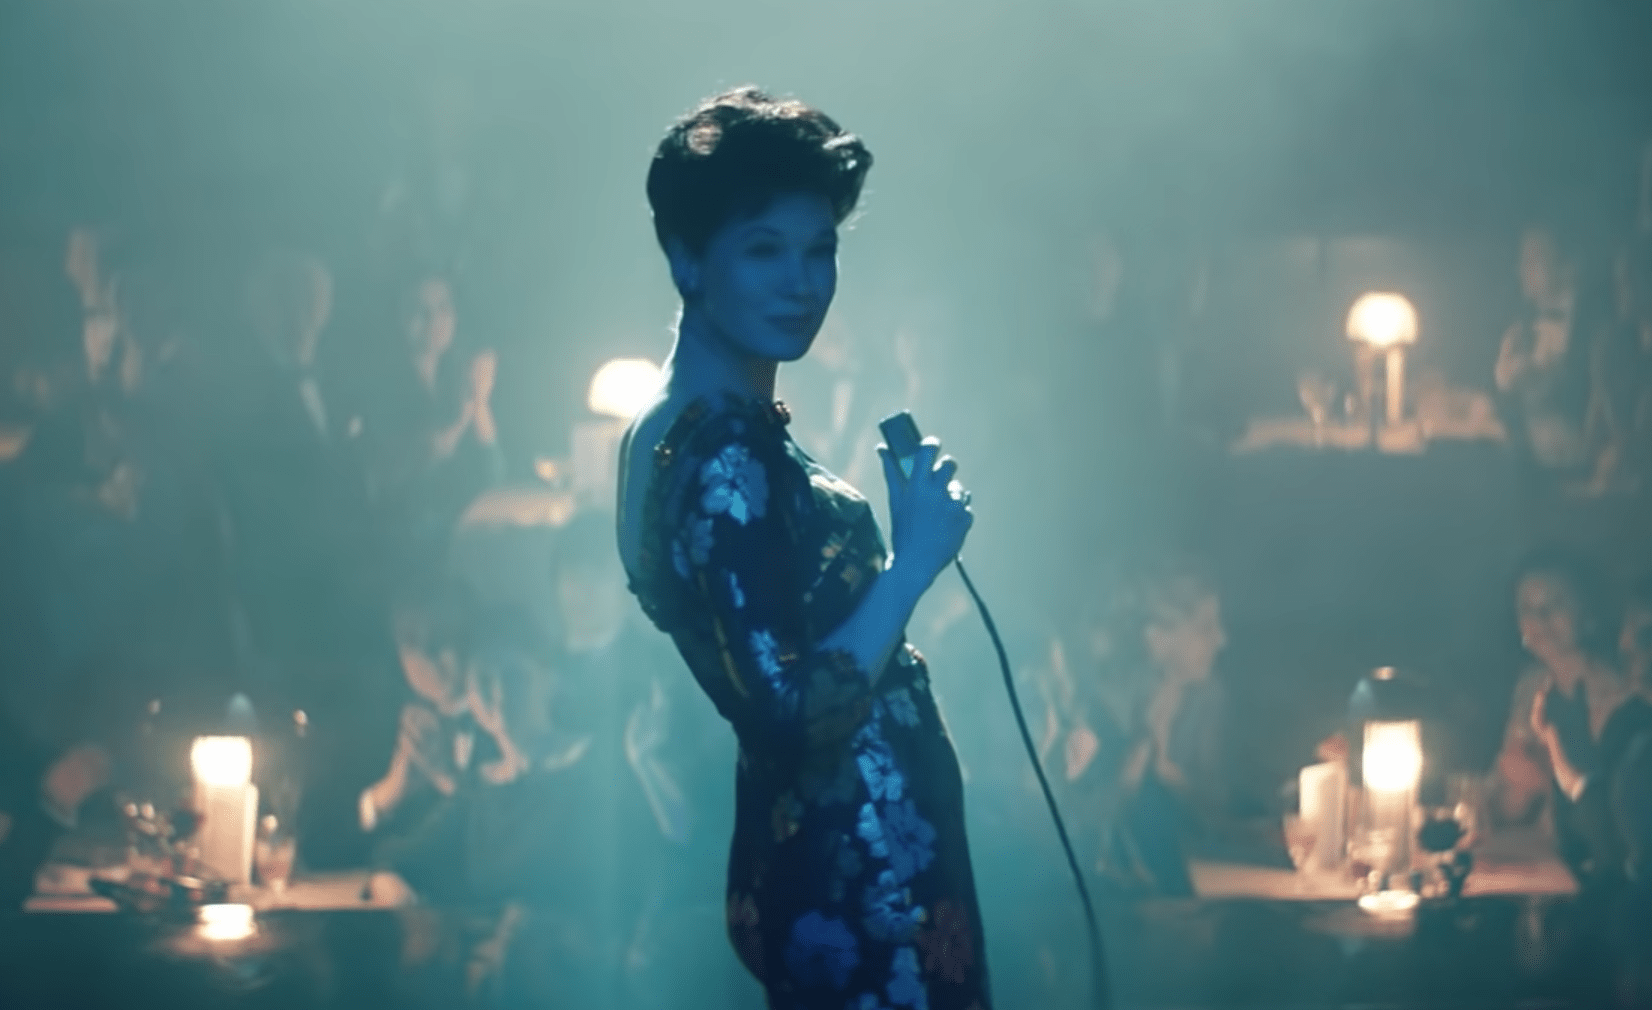 Watch Renée Zellweger as Judy Garland in Trailer for Judy